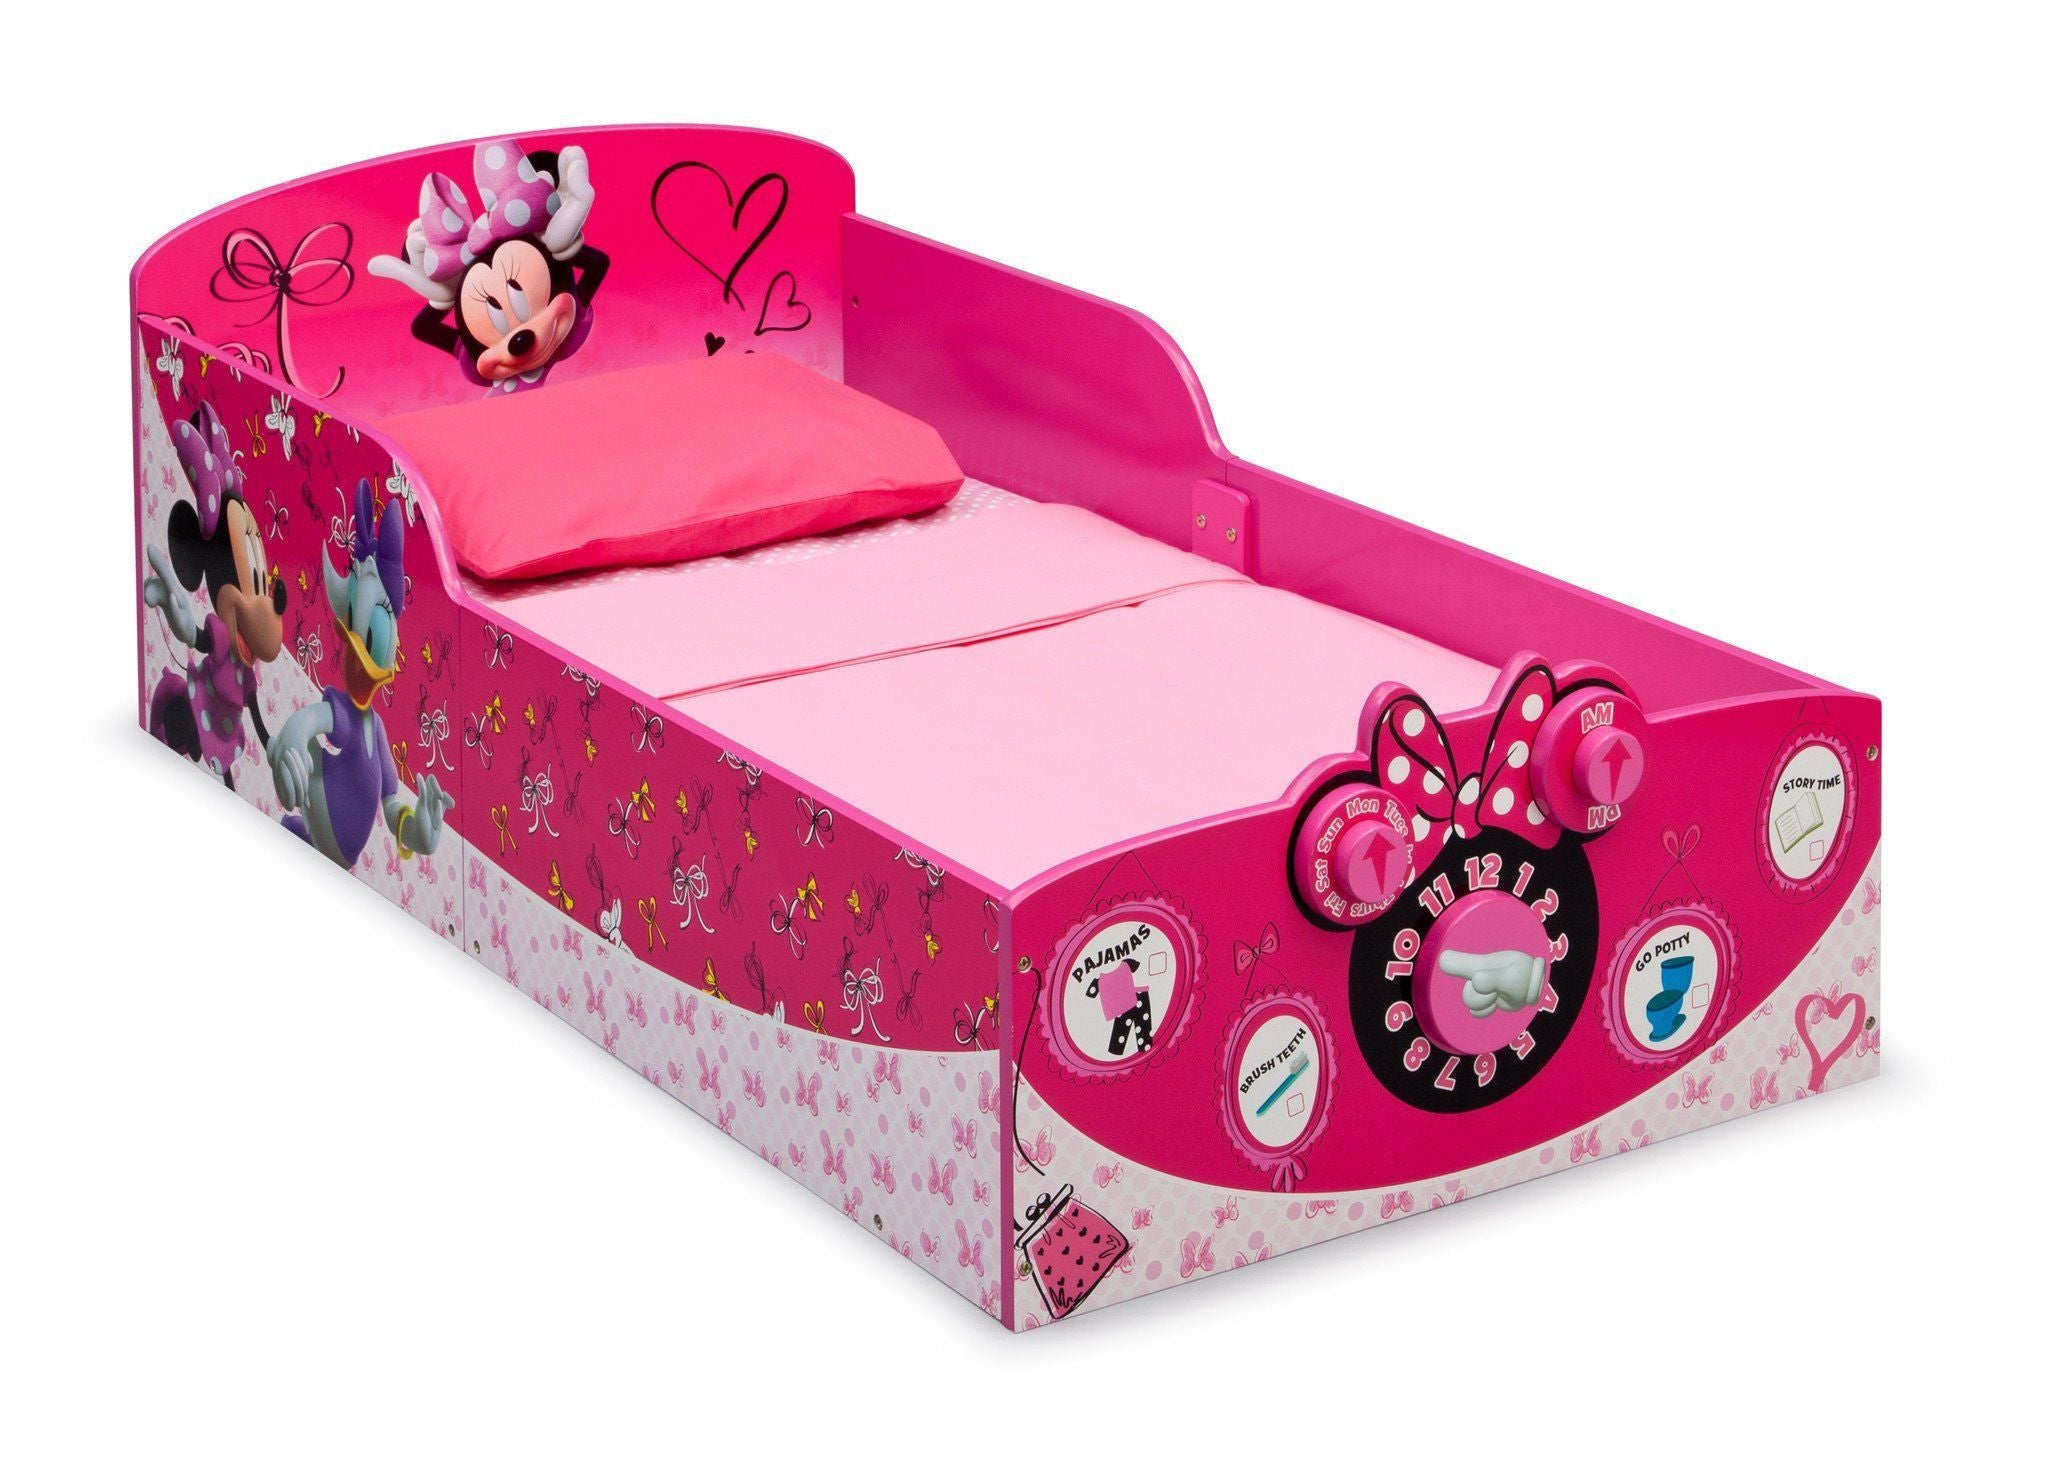 Minnie Mouse Interactive Wood Toddler Bed | Delta Children